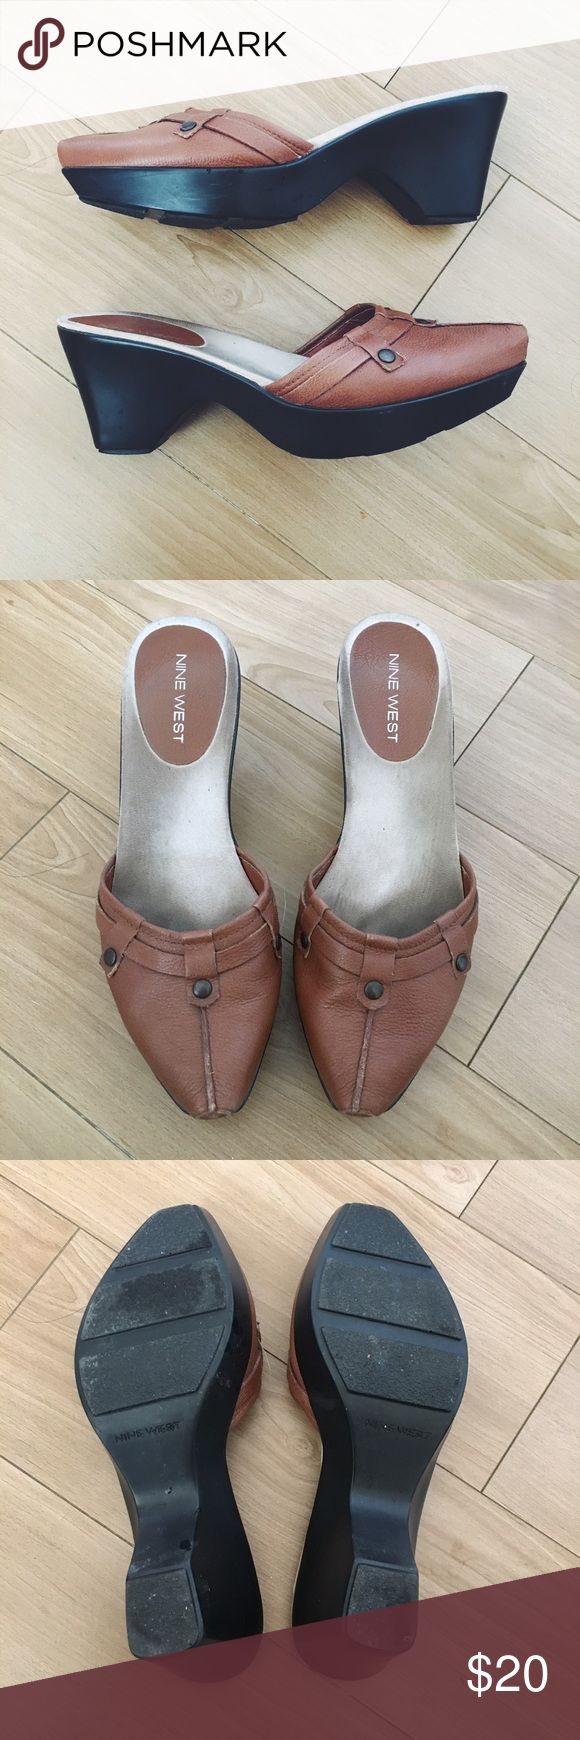 Nine West Brown Leather Mules Cute brown leather mules or clogs with button detail. Super comfortable, gently worn. Style is Tennile. Nine West Shoes Mules & Clogs